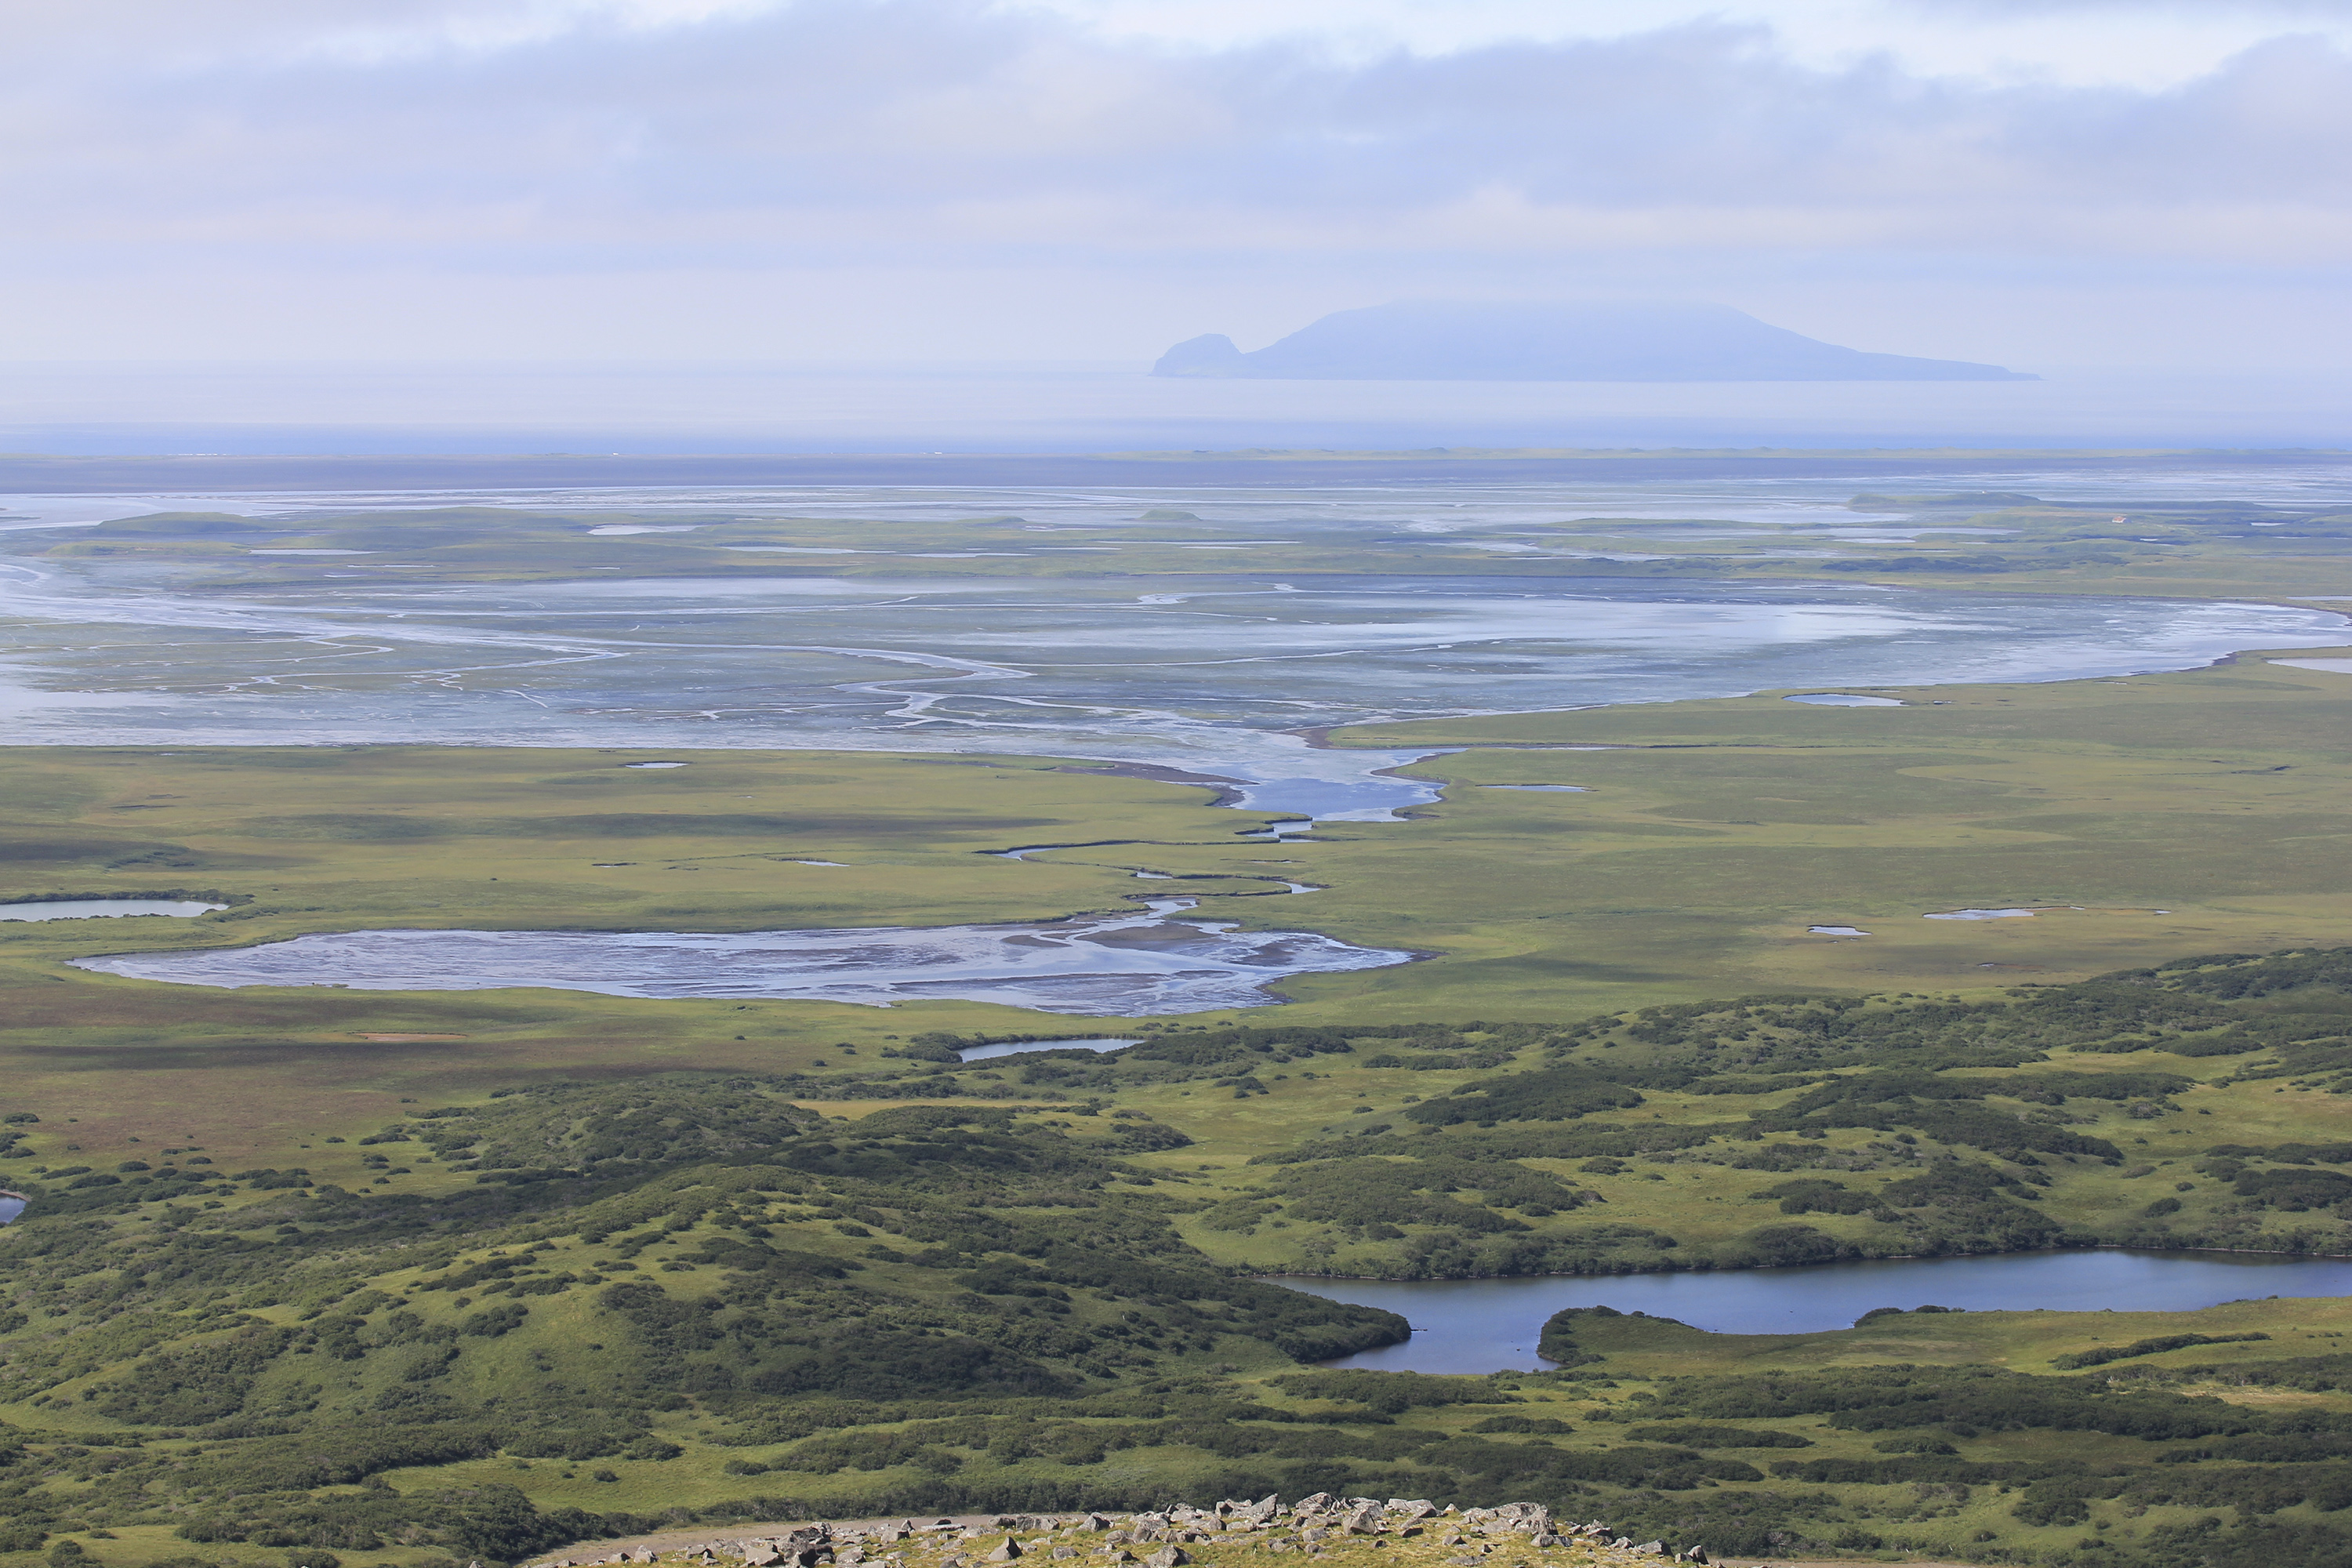 FILE - The lagoon complex is seen in the Izembek National Wildlife Refuge, located in Alaska's Aleutian Islands, in this U.S. Fish and Wildlife Service picture taken Aug. 24, 2010.